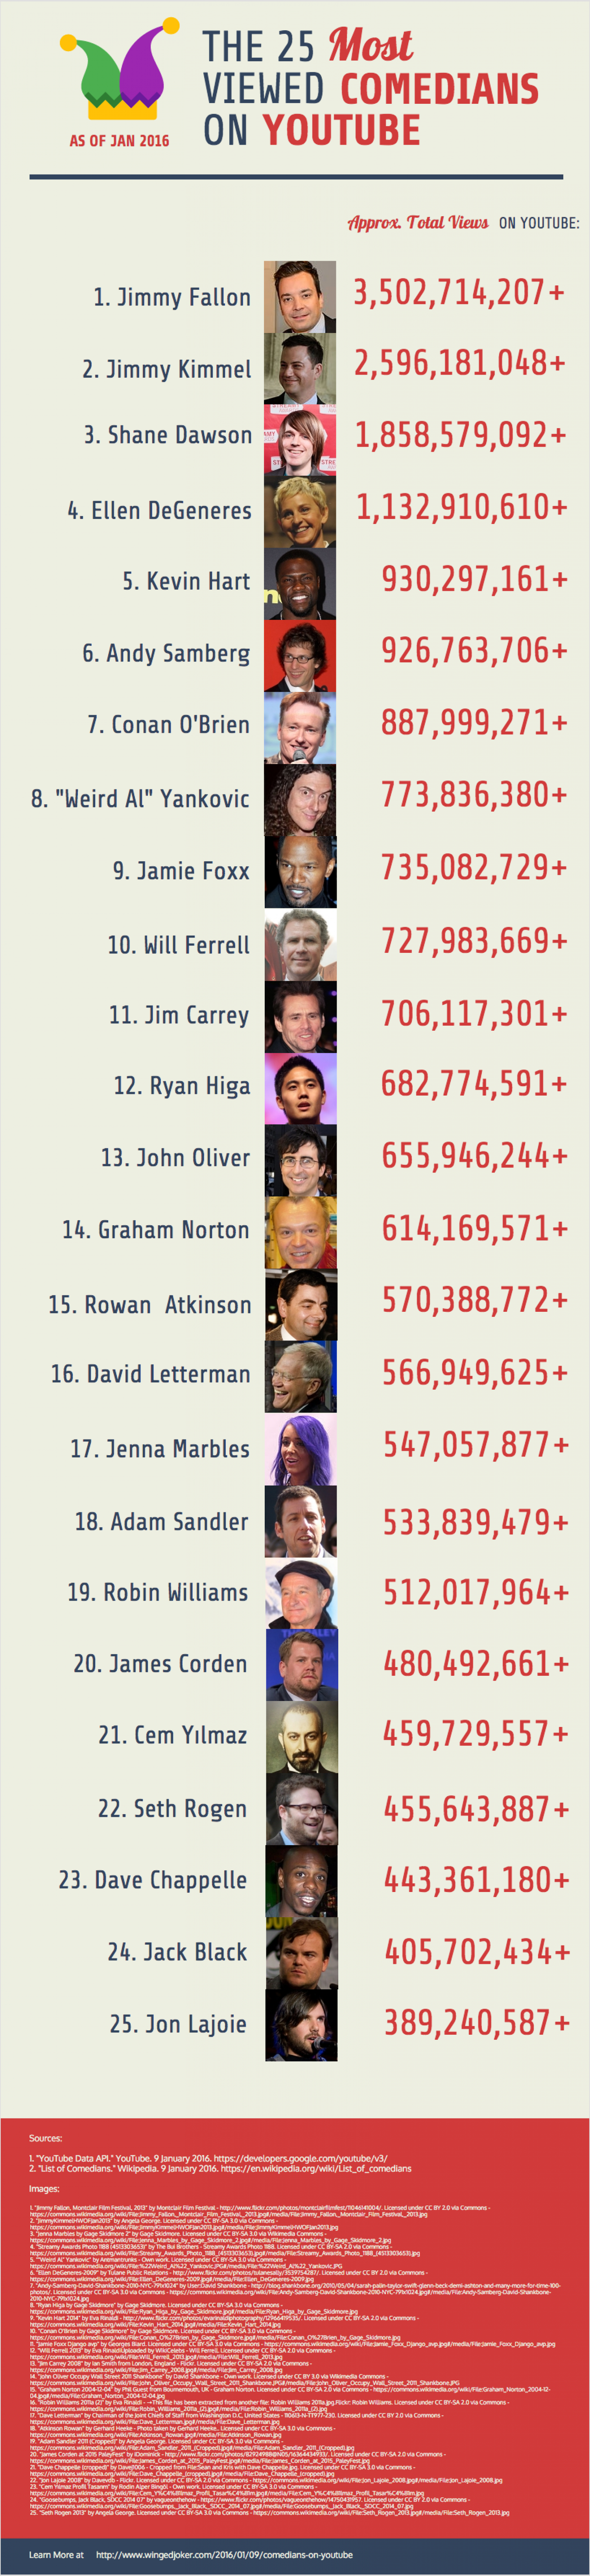 The 25 Most Viewed Comedians on YouTube Infographic